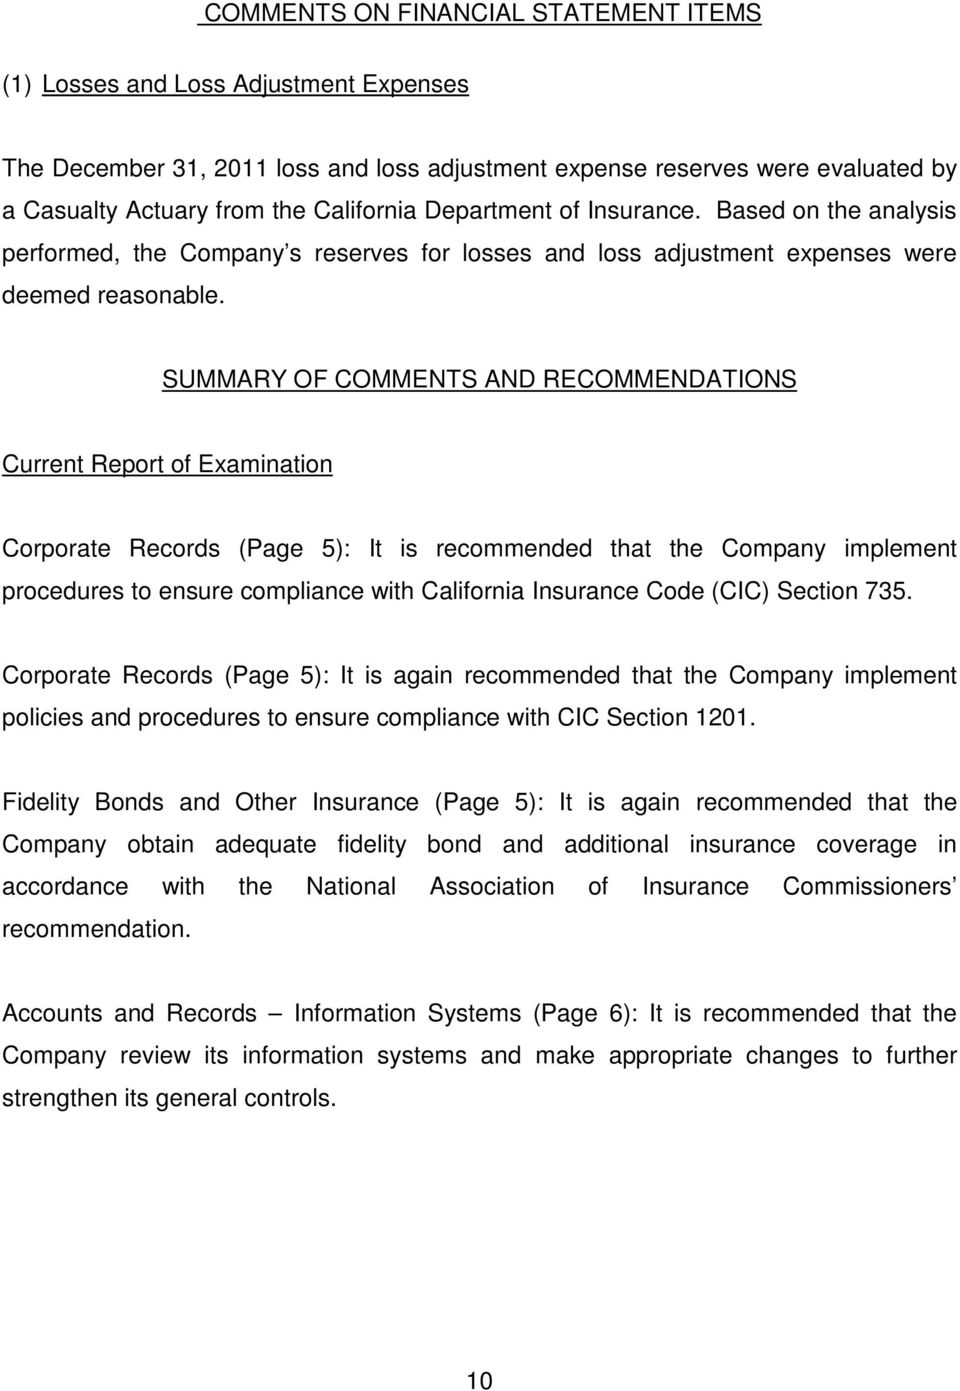 SUMMARY OF COMMENTS AND RECOMMENDATIONS Current Report of Examination Corporate Records (Page 5): It is recommended that the Company implement procedures to ensure compliance with California